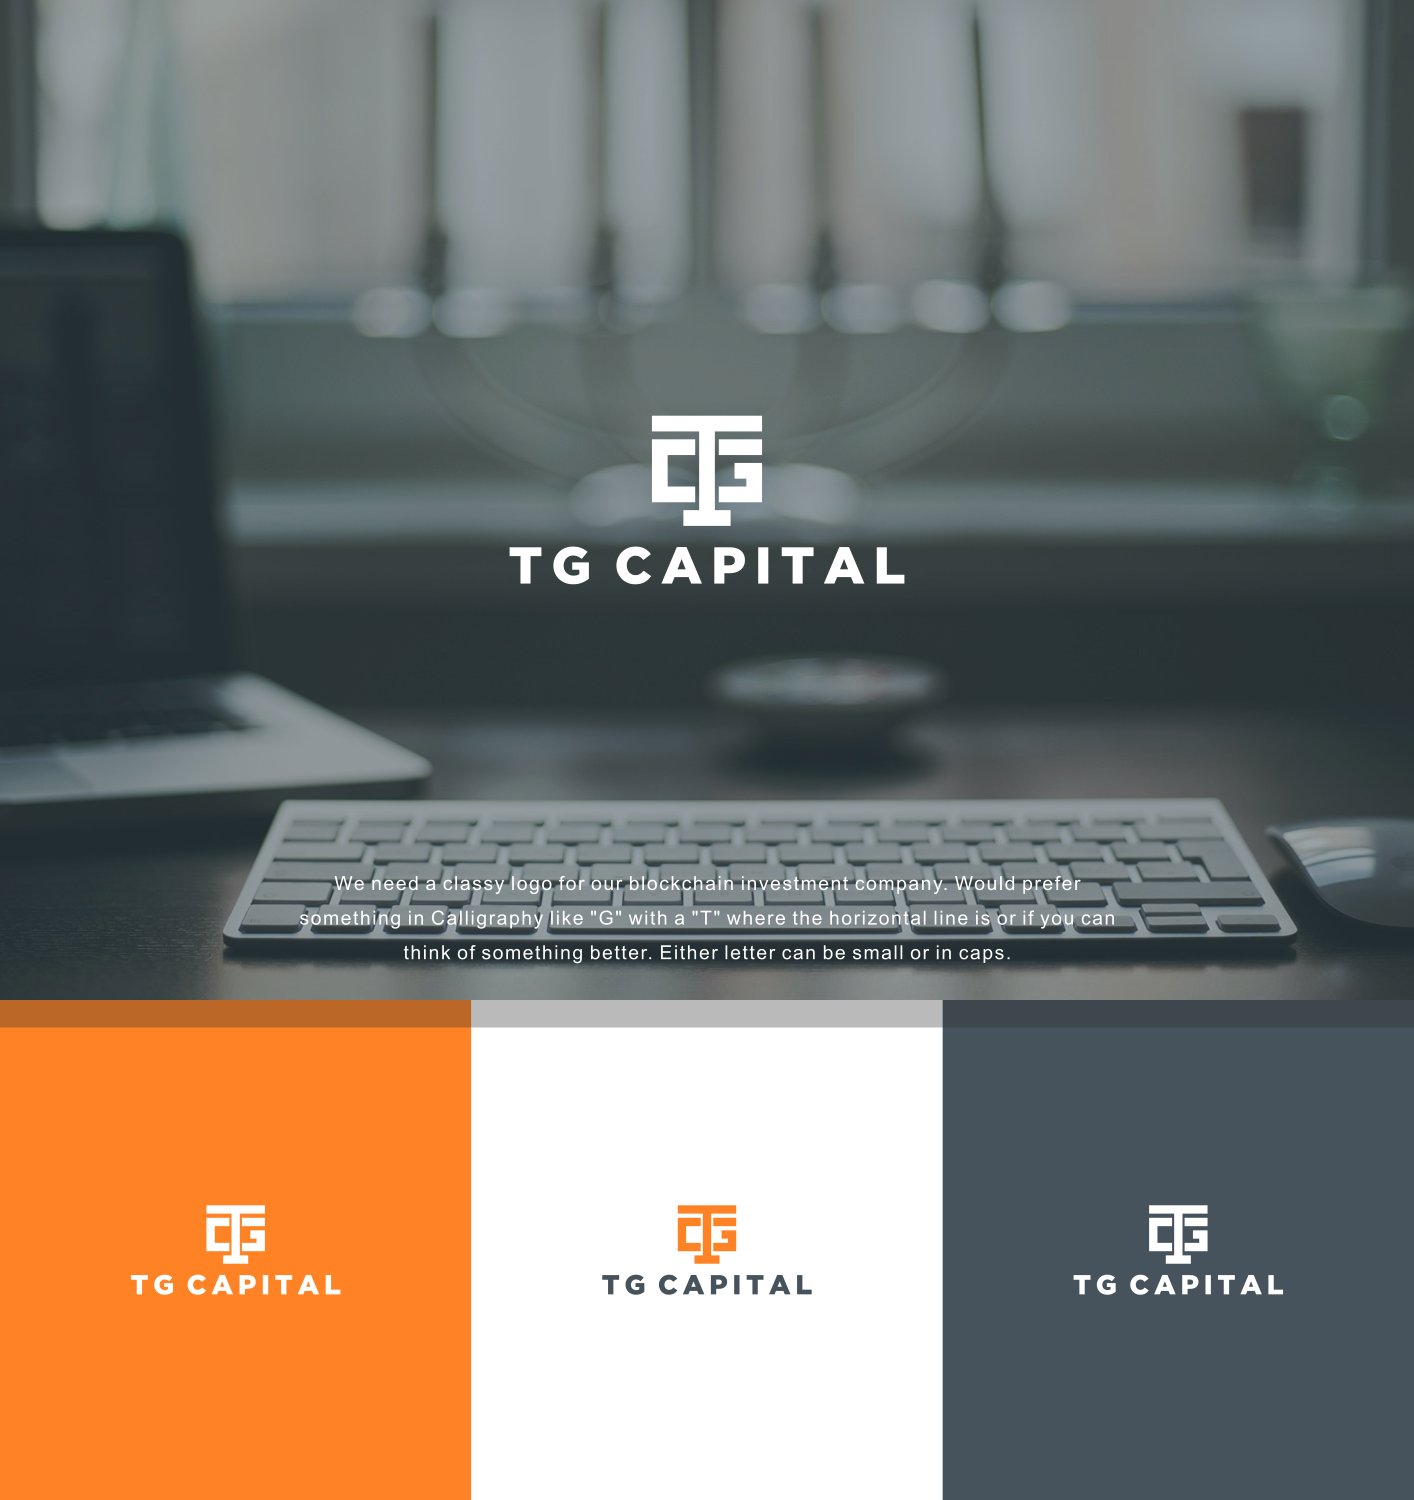 Logo Design For Tg Capital By Fireblaster Design 18773025